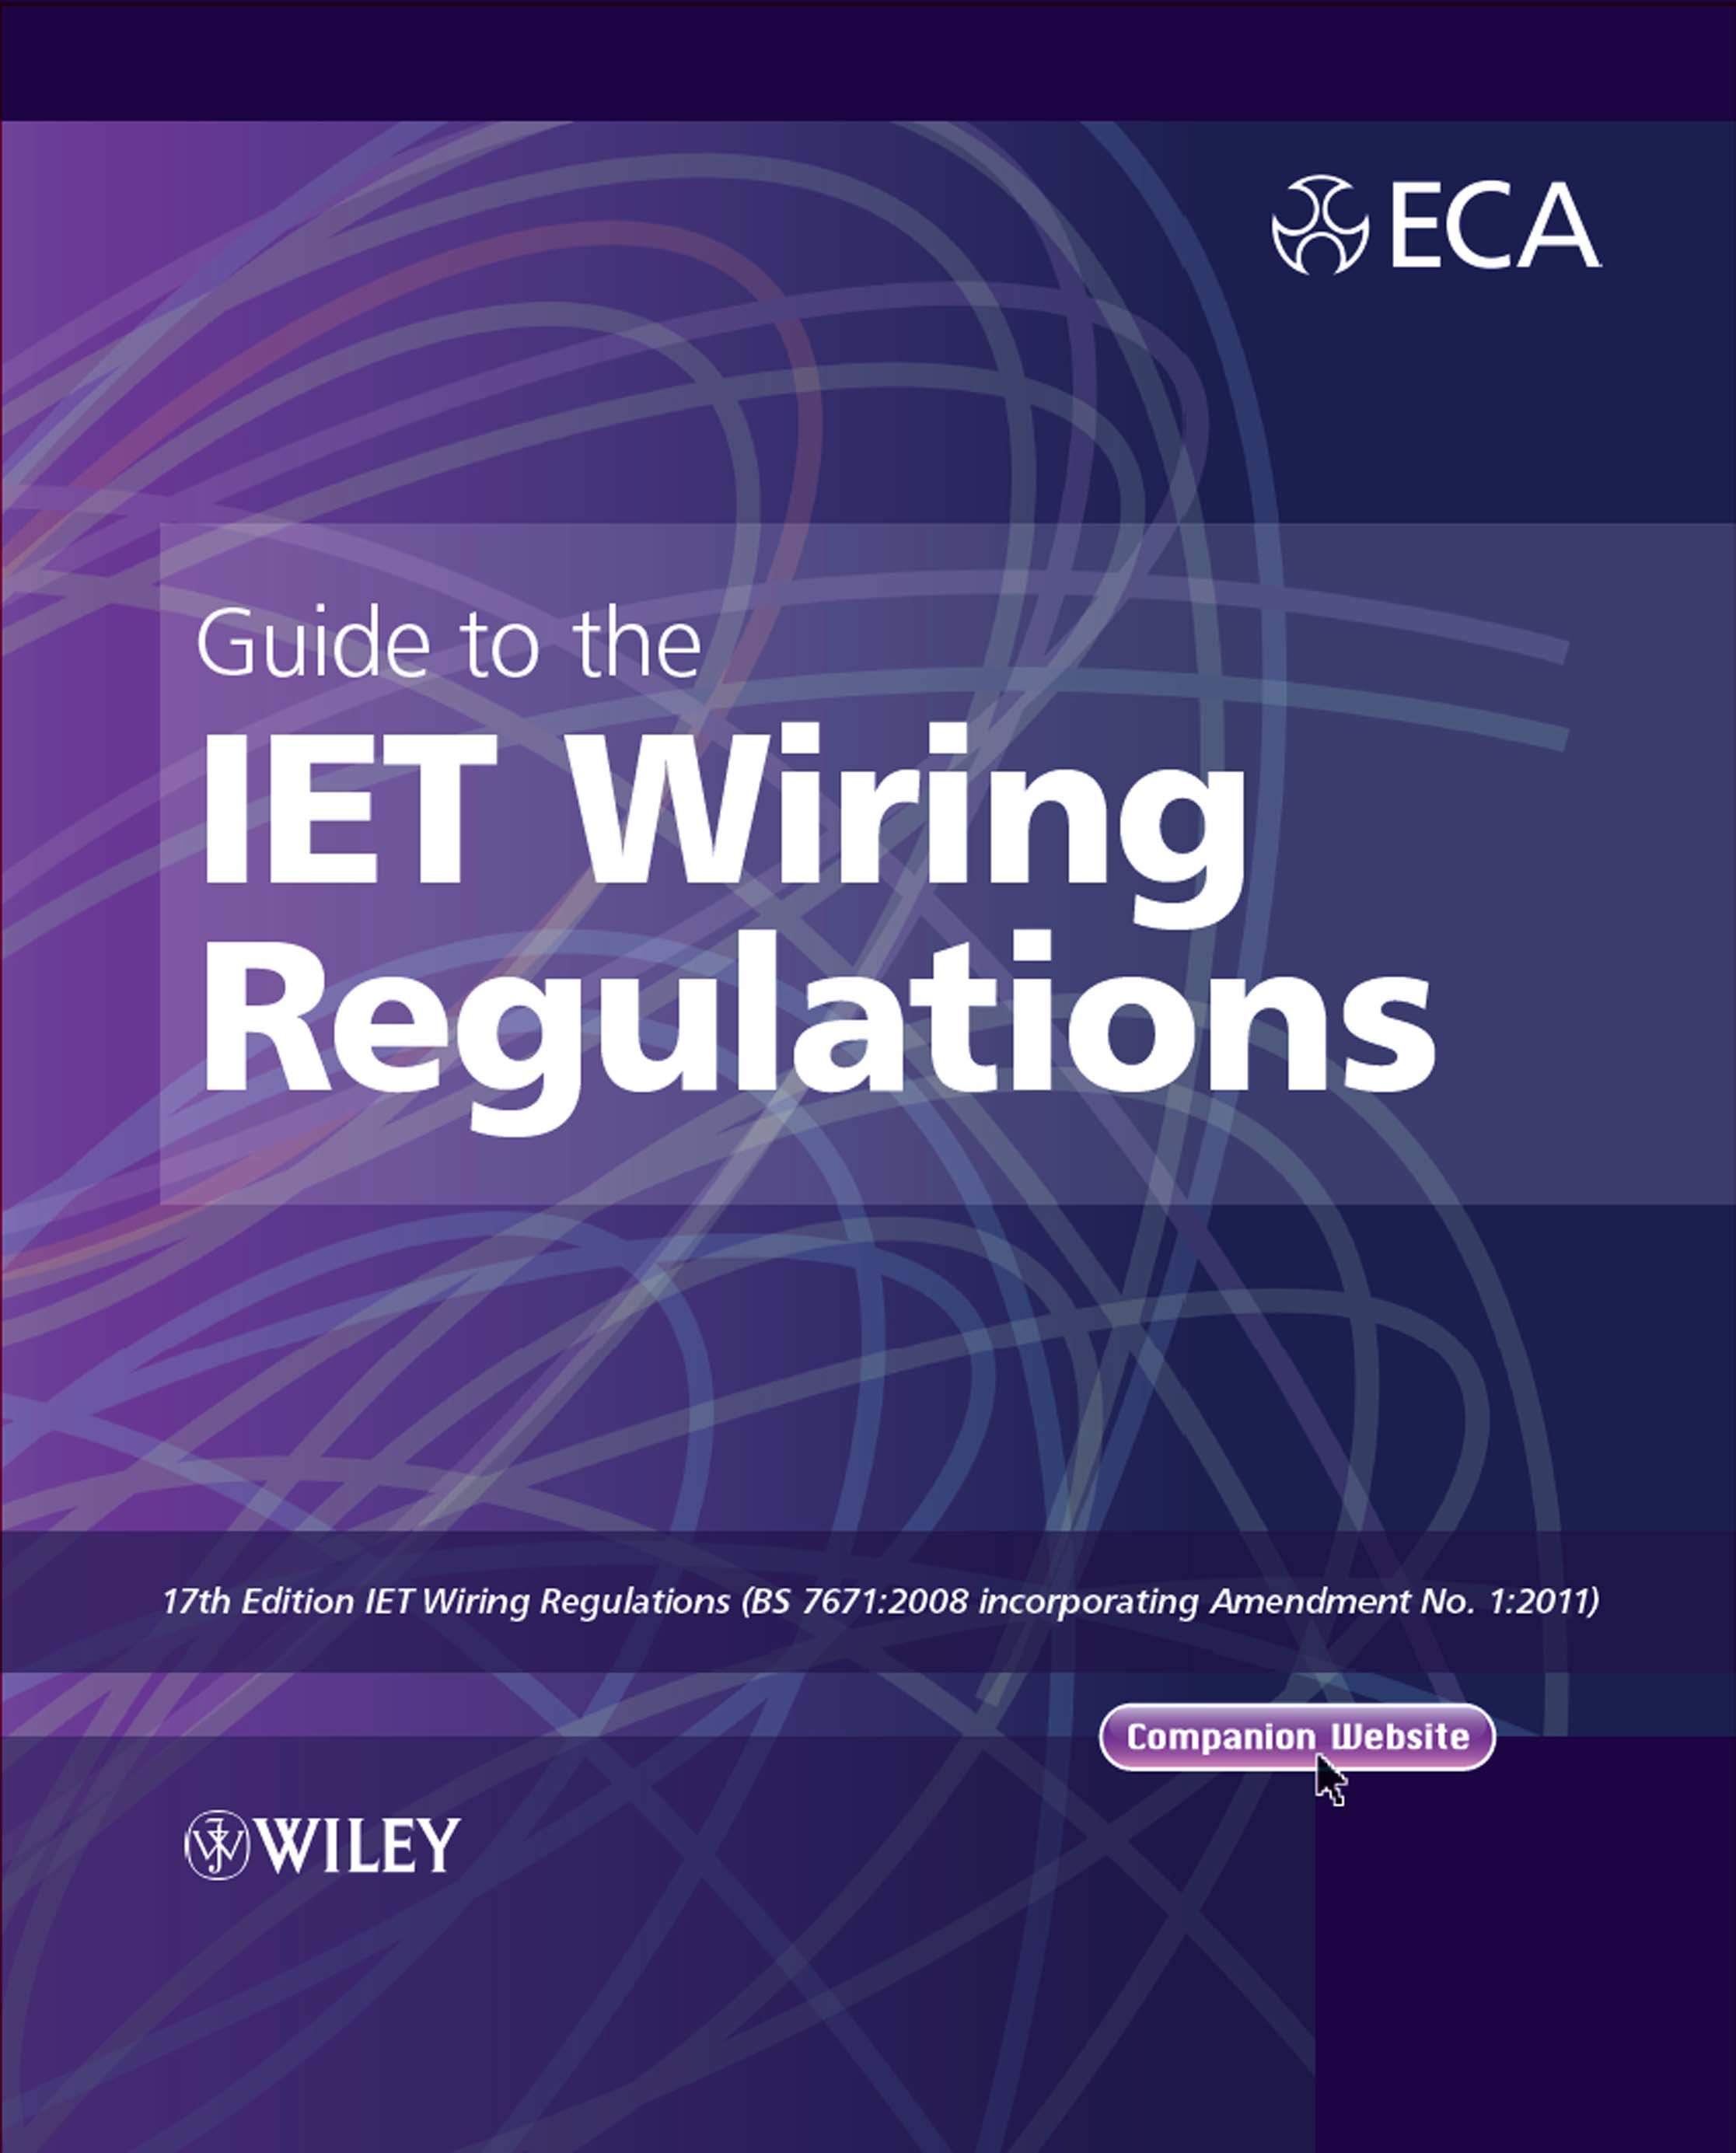 On-site guide: (bs 7671:2008 wiring regulations, incorporating.